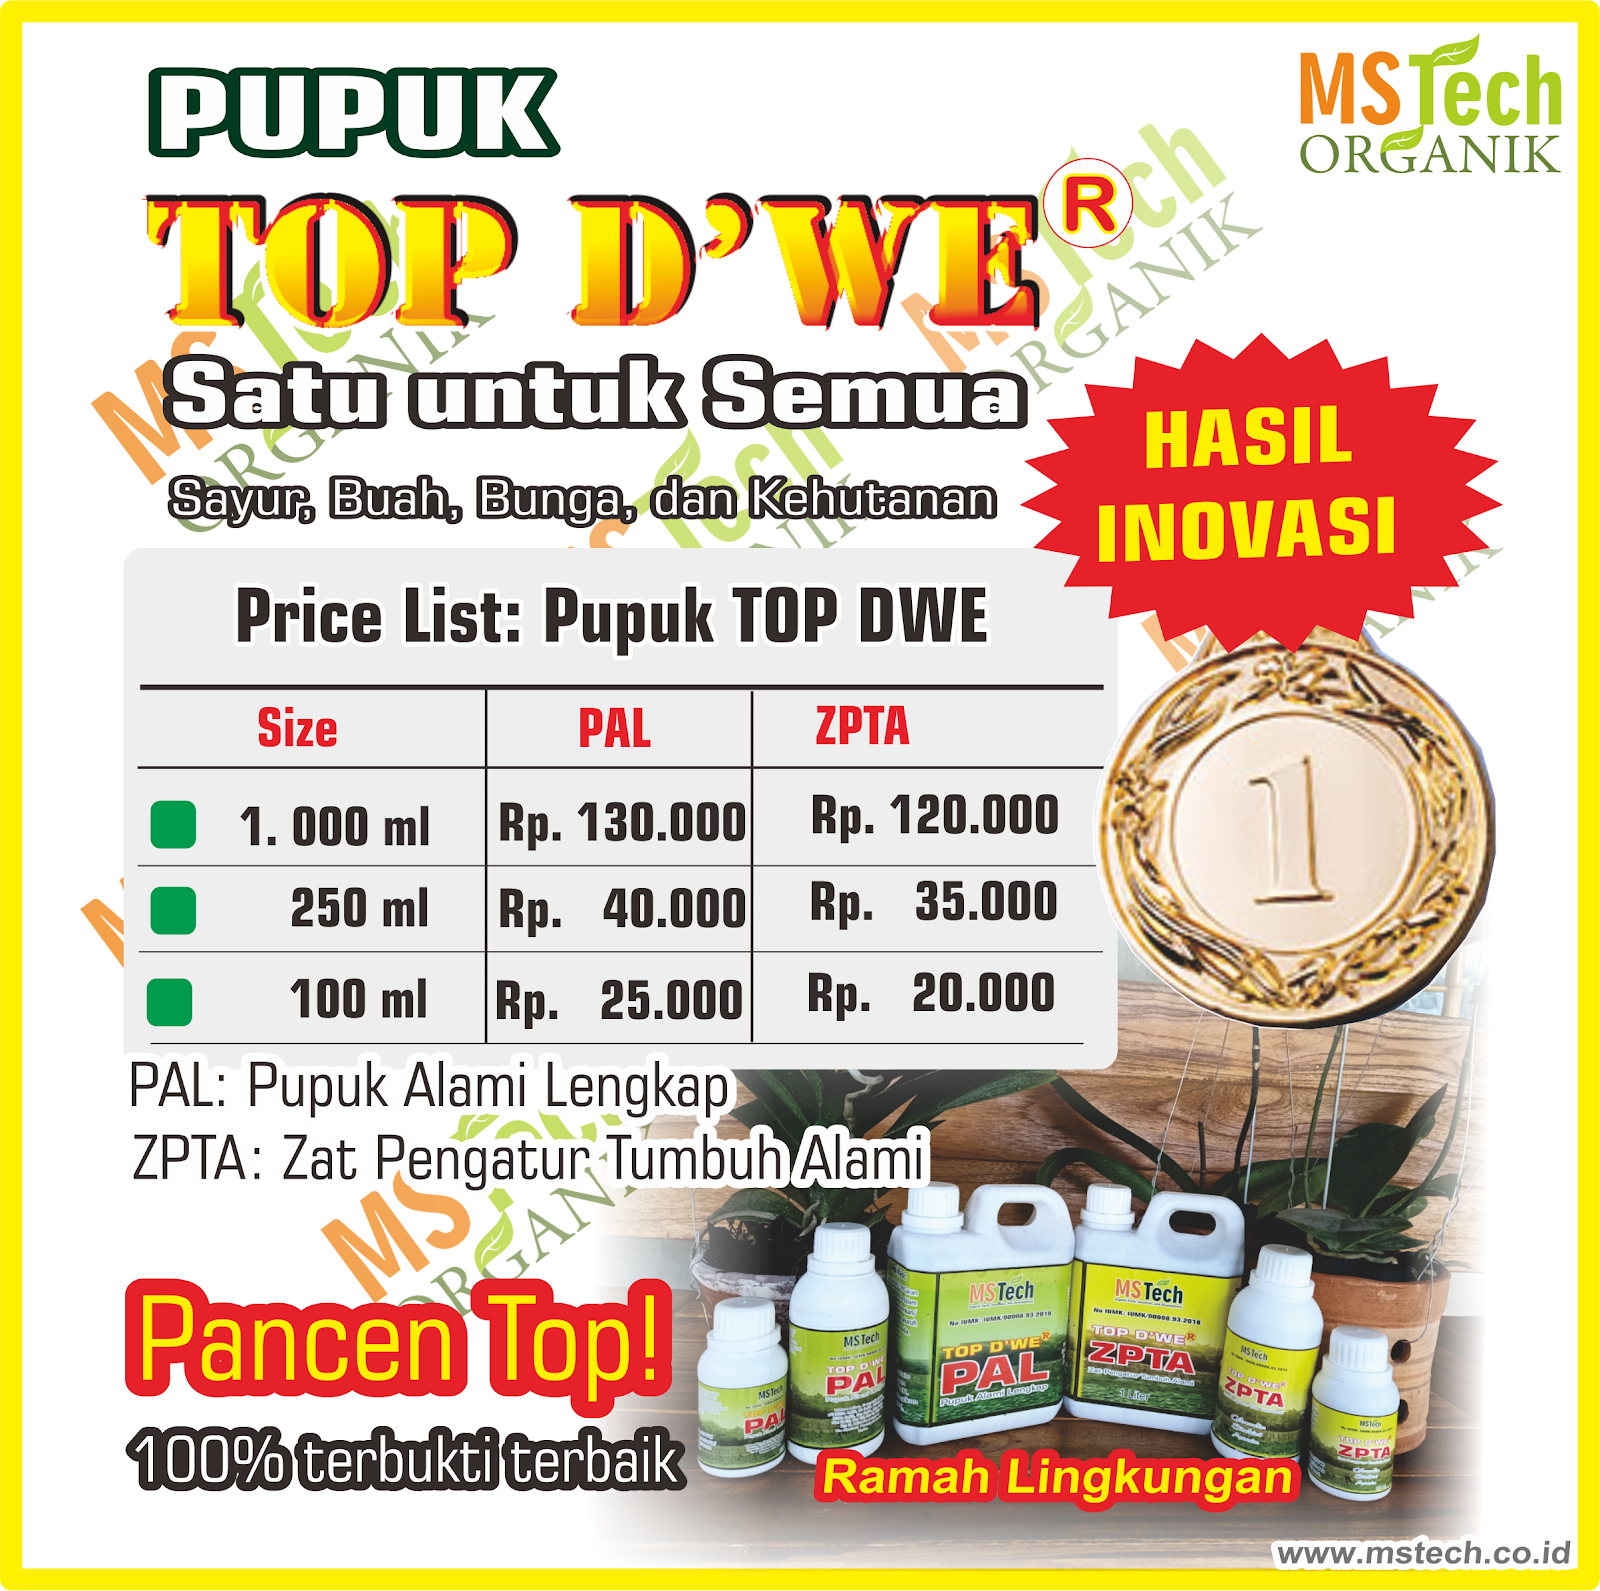 PRICE LIST PUPUK TOP DWE